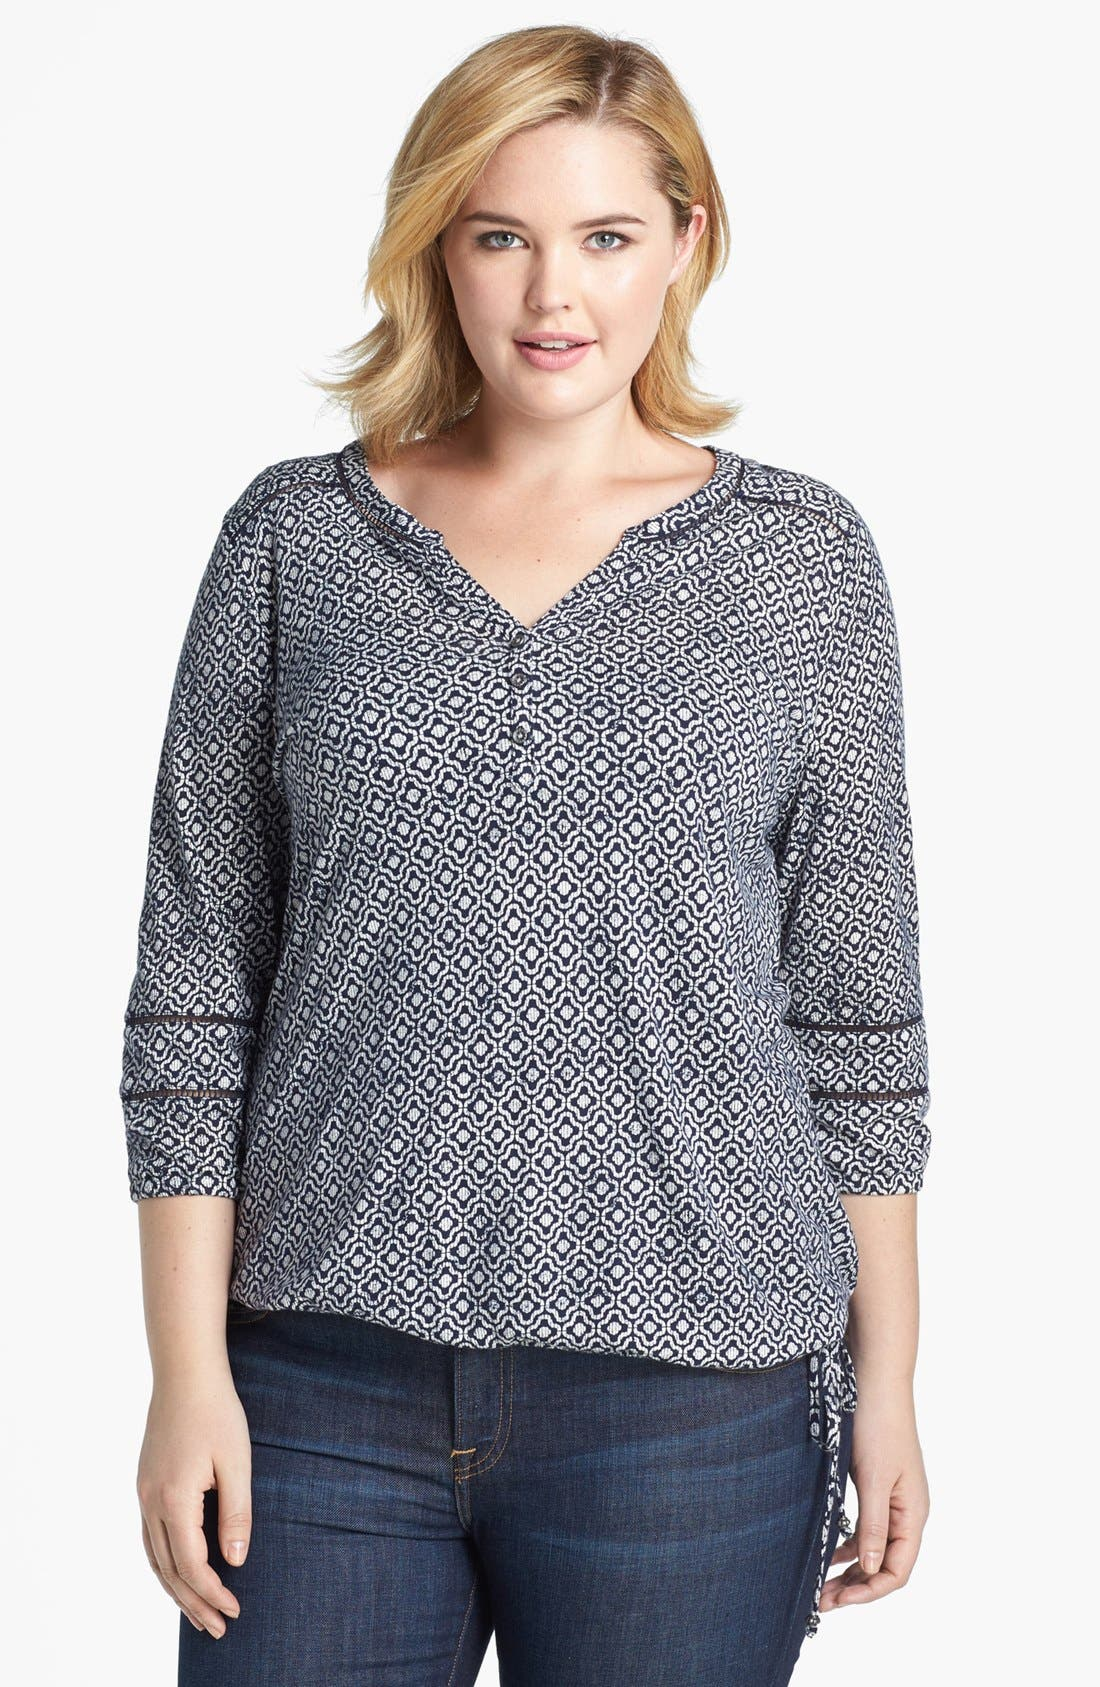 Alternate Image 1 Selected - Lucky Brand Geo Tile Blouson Top (Plus Size)